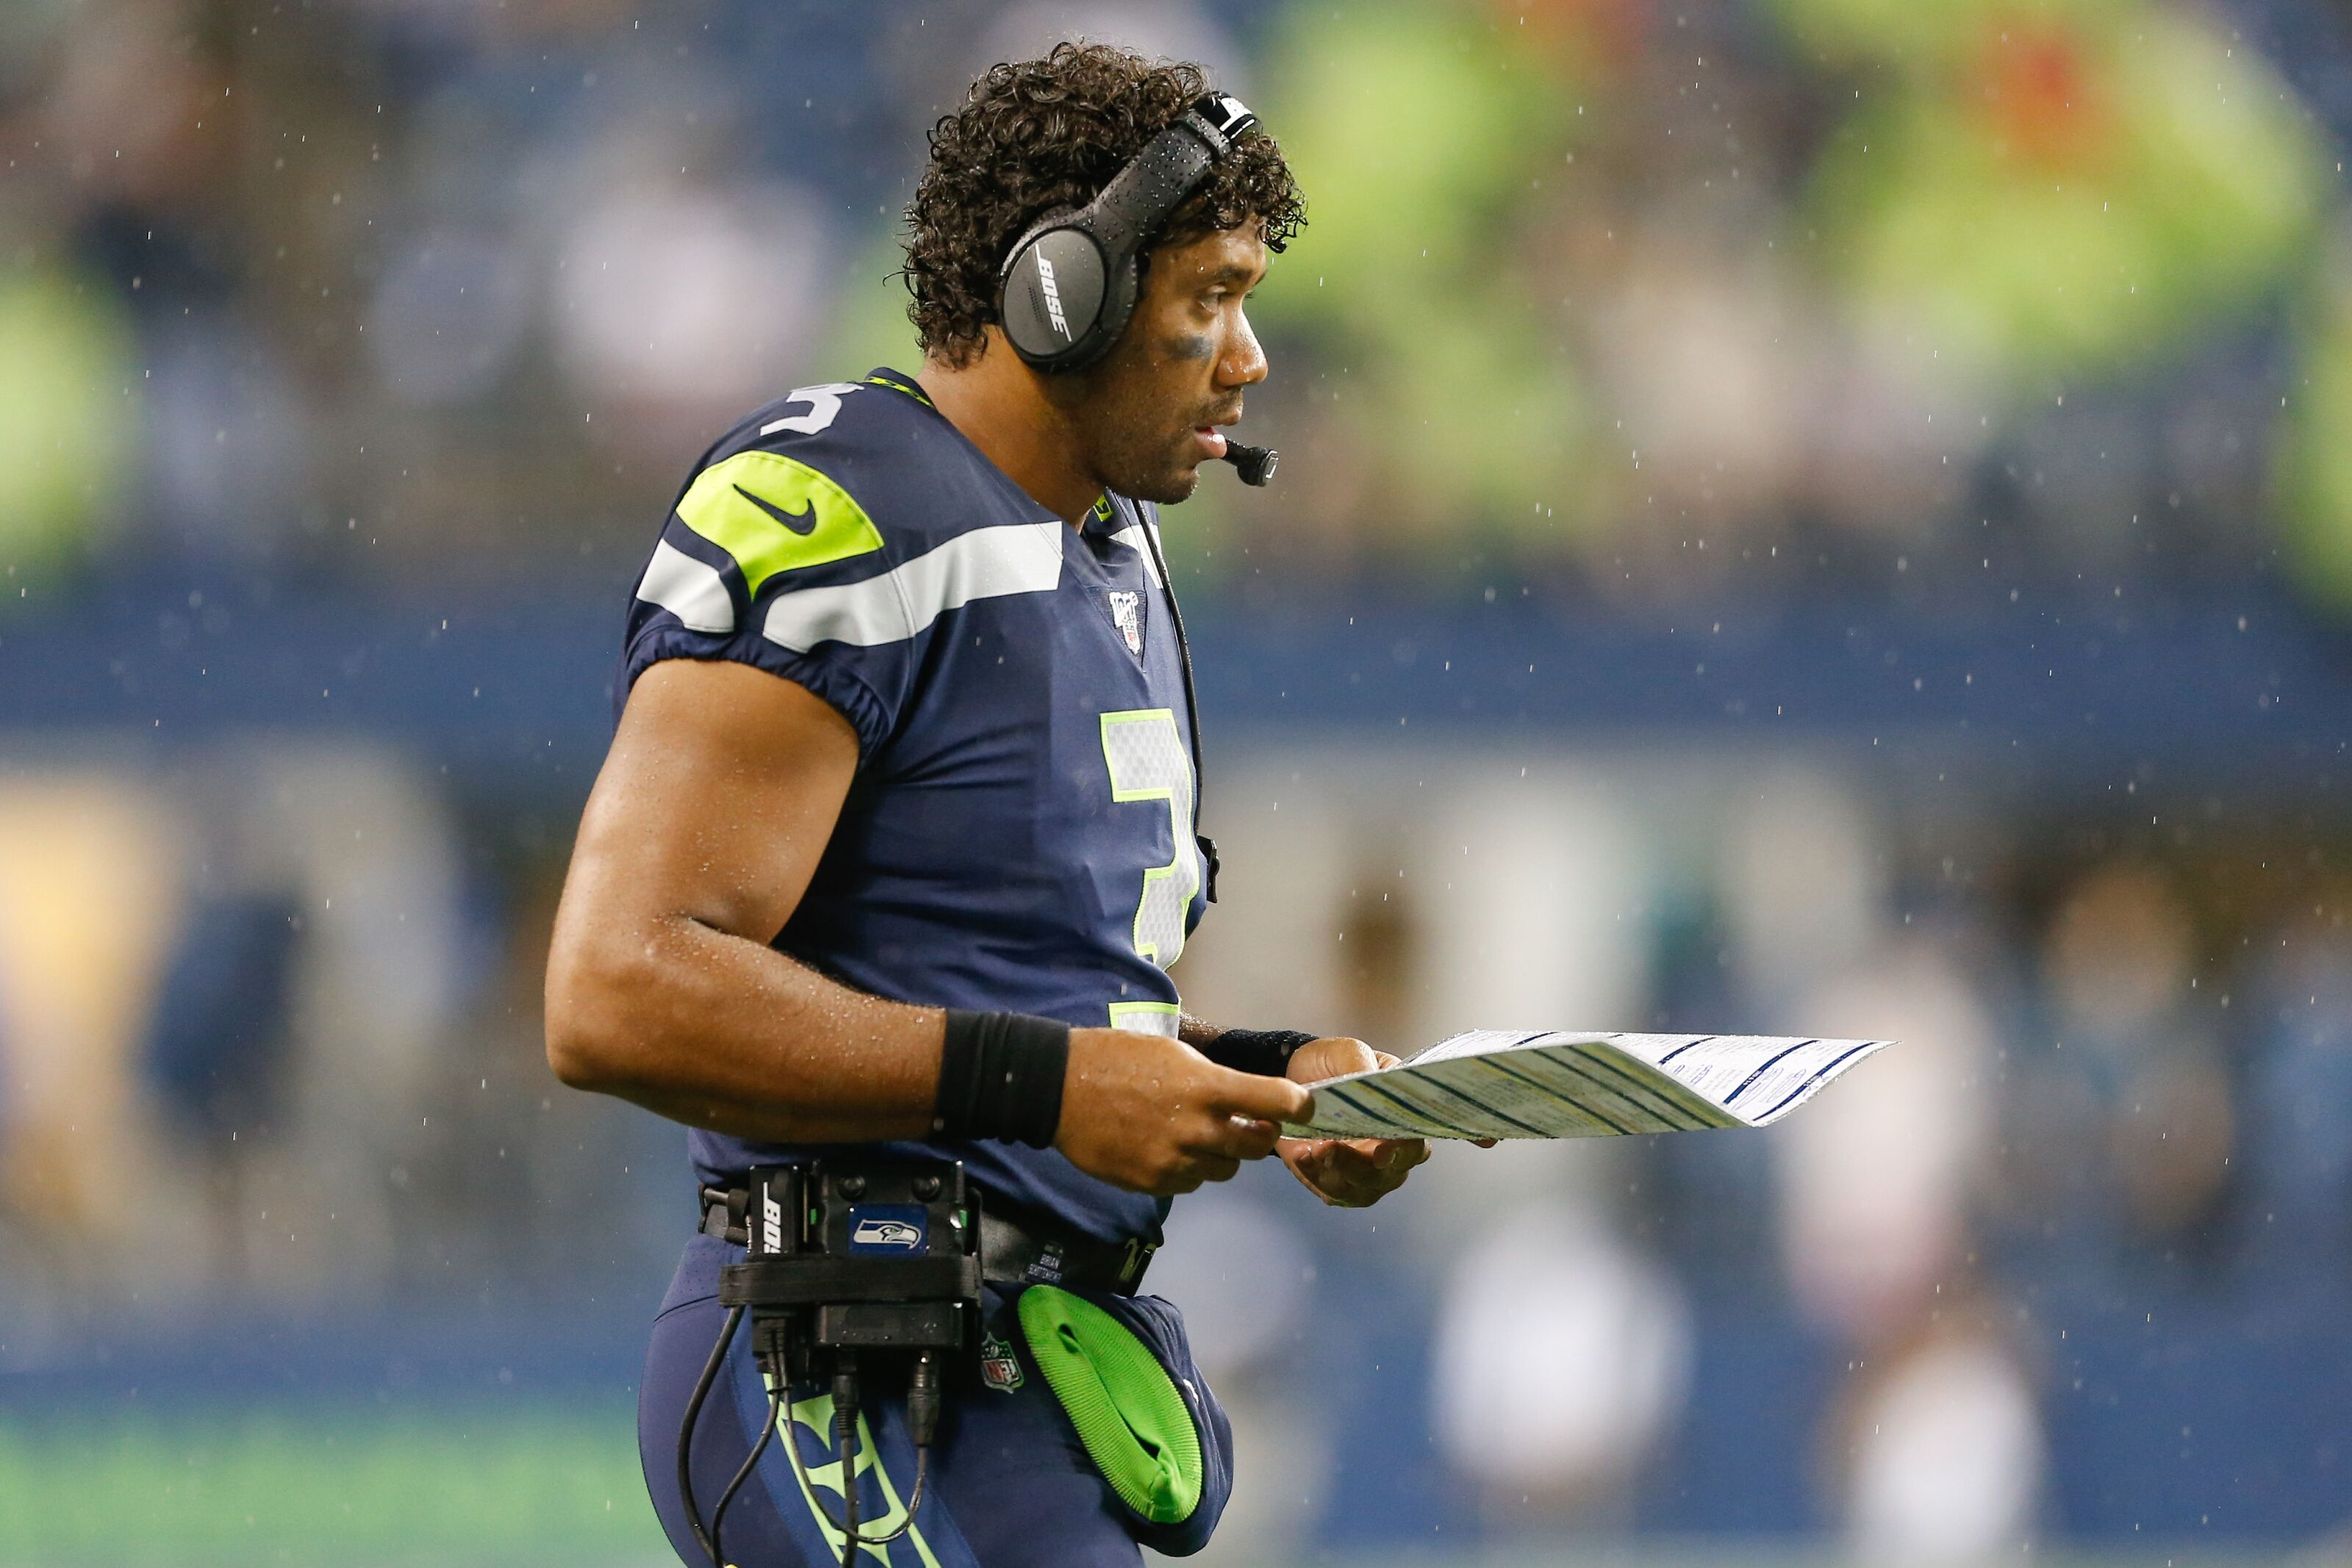 Russell Wilson to Dan Patrick: the mental game rules all - 12th Man Rising